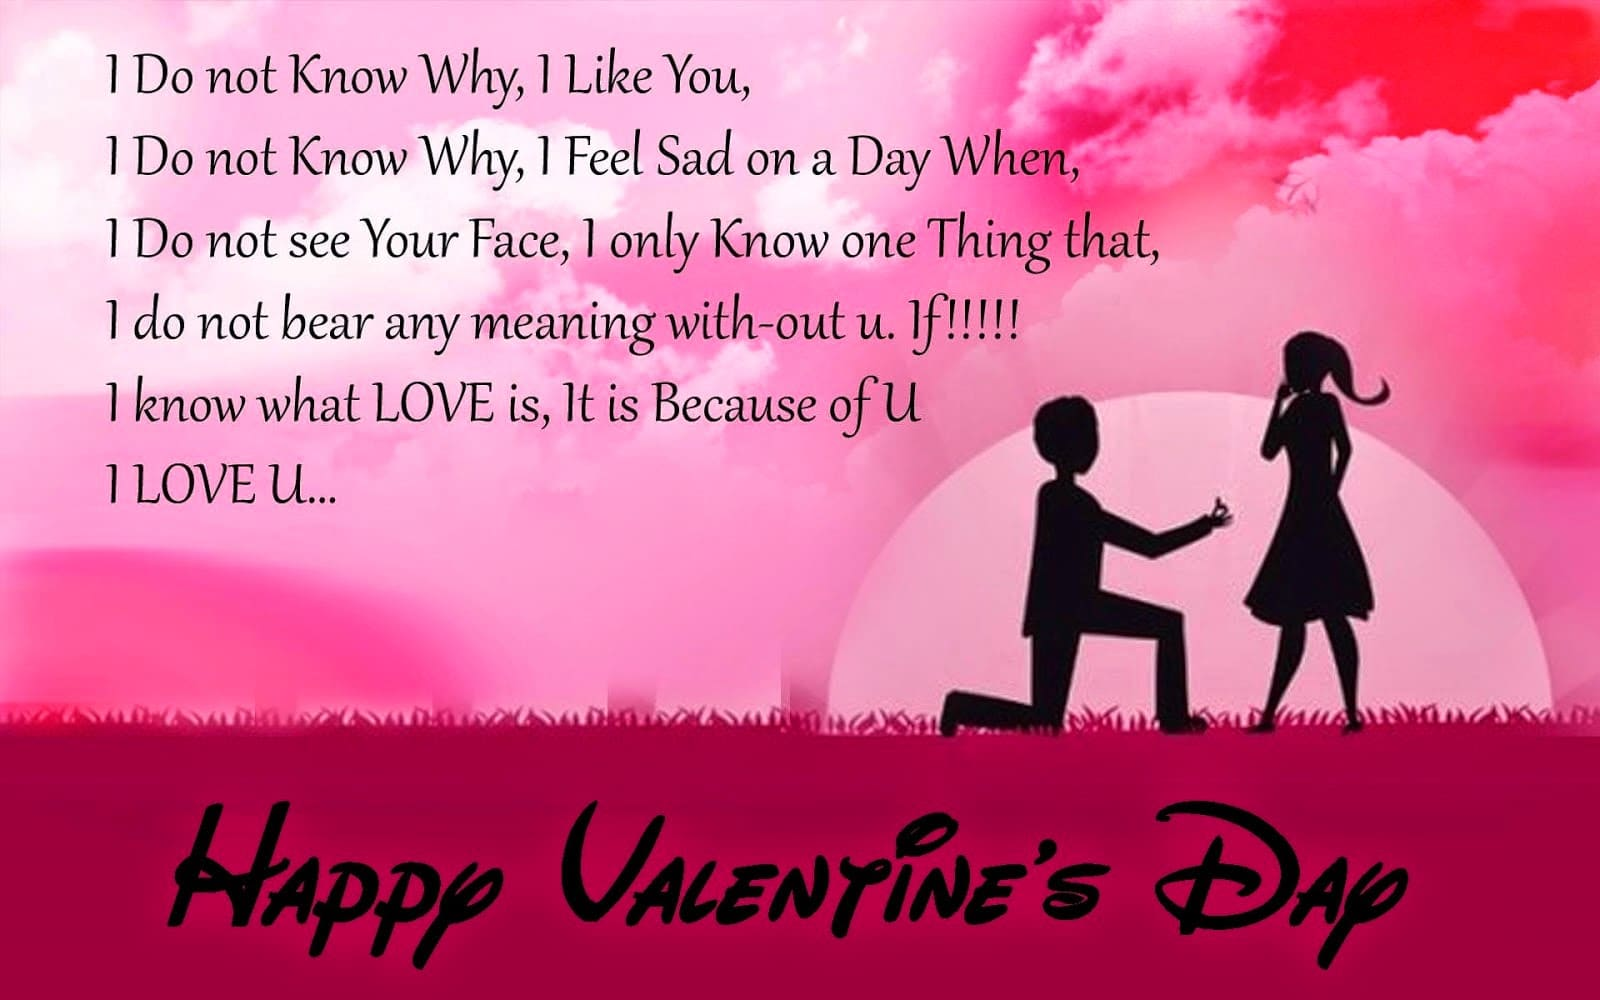 Happy Valentine's Day Messages and cards for her